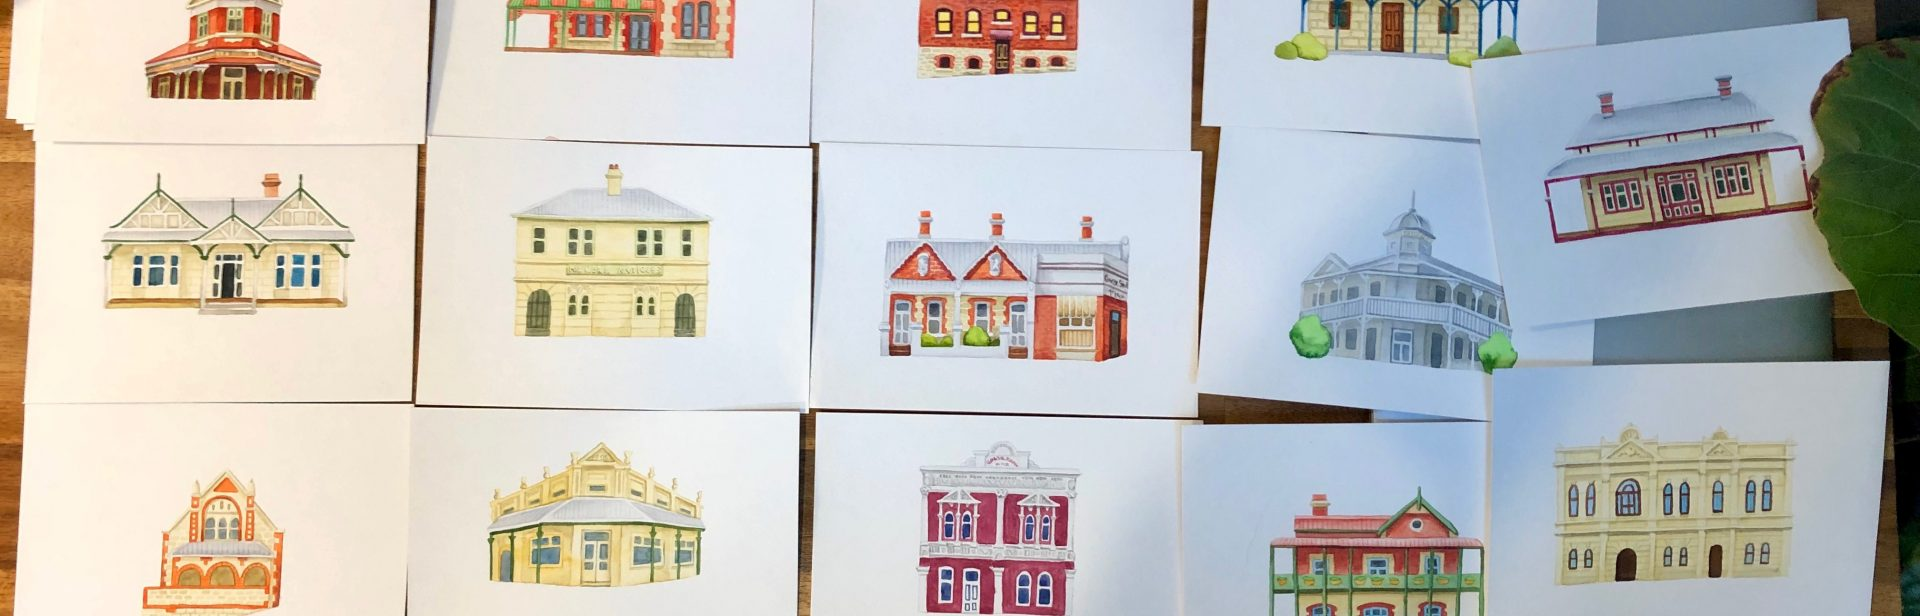 Watercolours by MOJO Design, for East Fremantle Heritage Trail